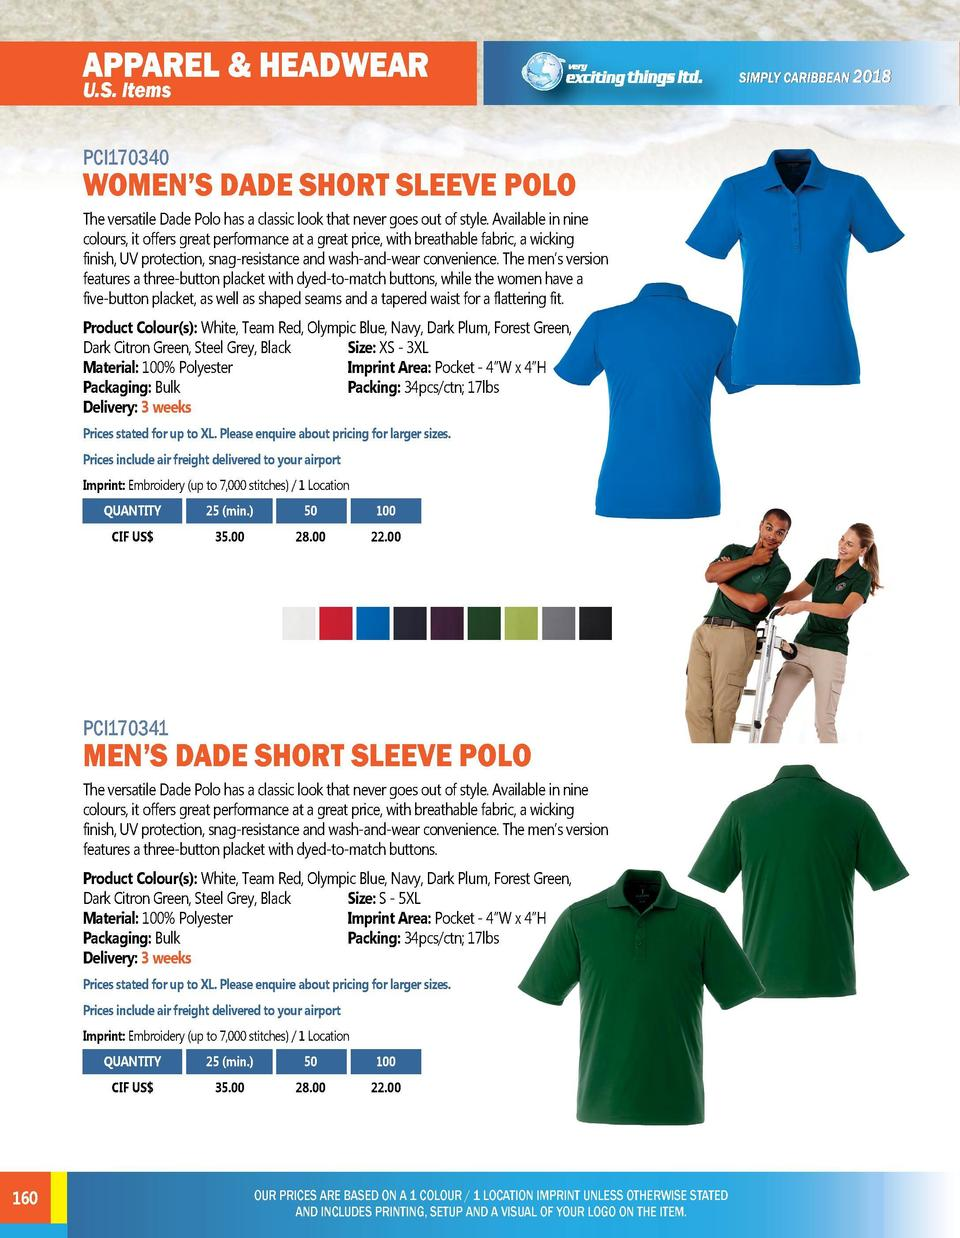 APPAREL   HEADWEAR  APPAREL   HEADWEAR  PCI170340  PCI170342  U.S. Items  WOMEN   S DADE SHORT SLEEVE POLO The versatile D...